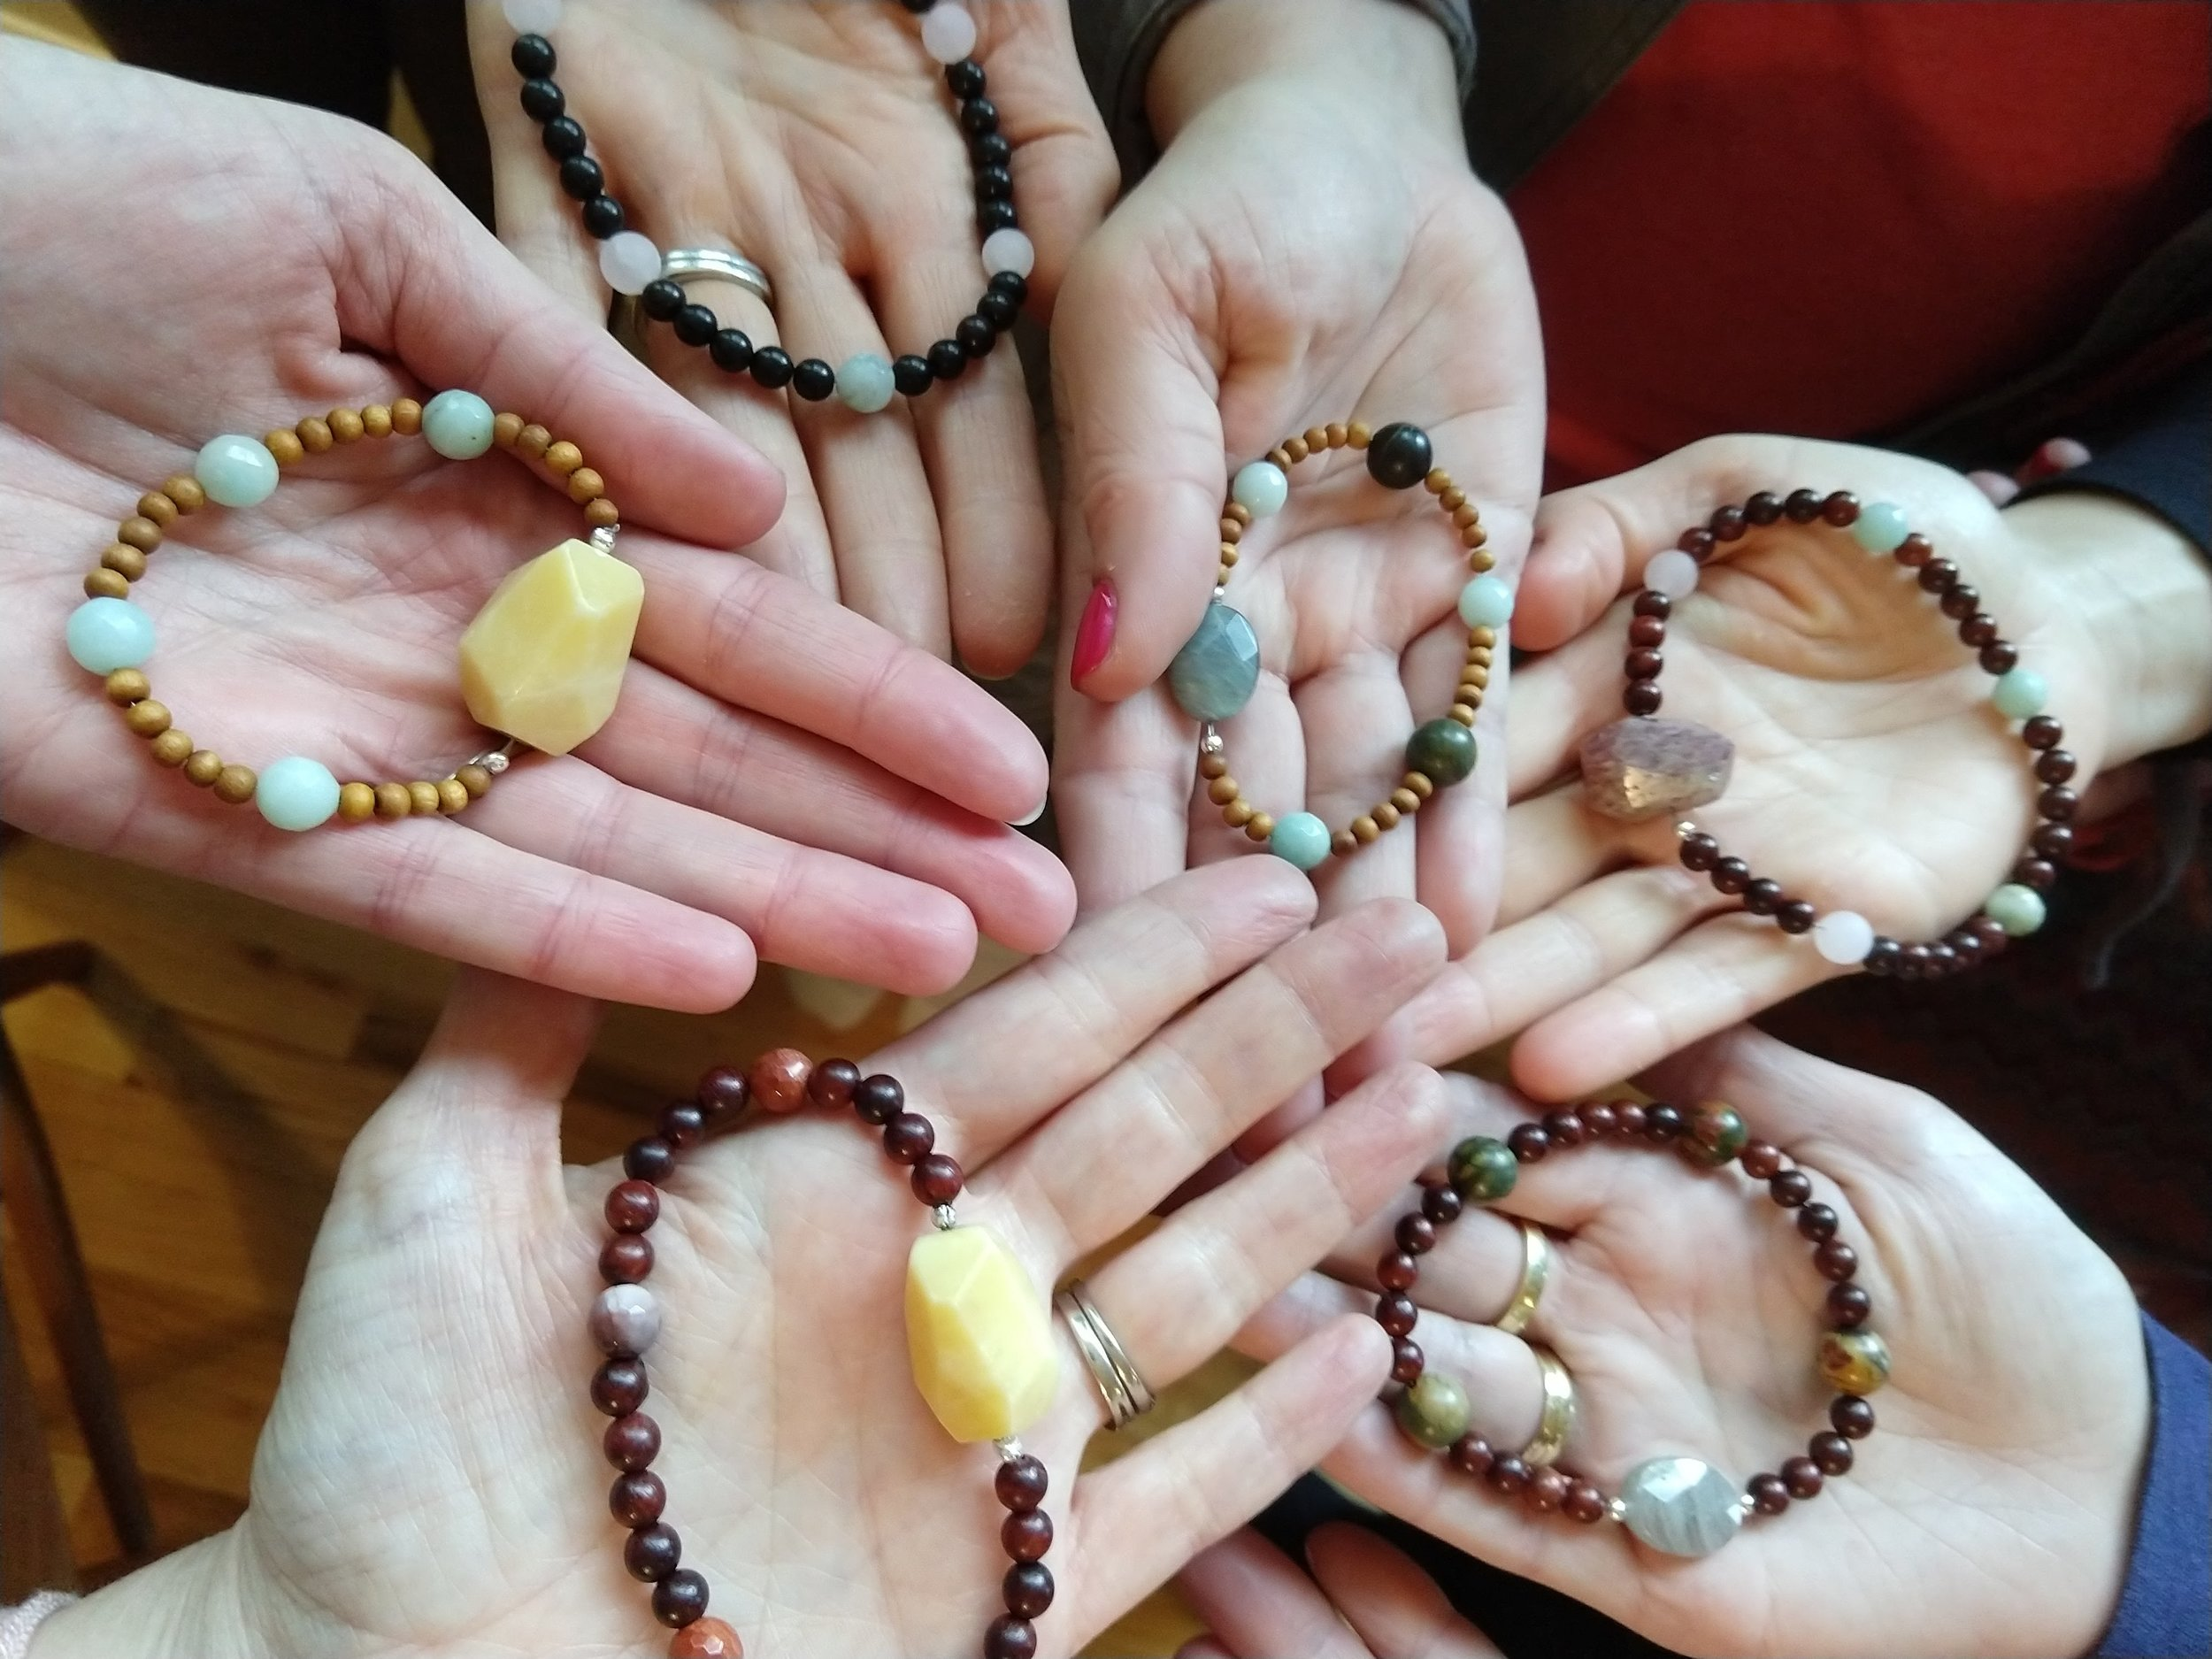 Participants in my Meditation Beads Workshop show their creations.